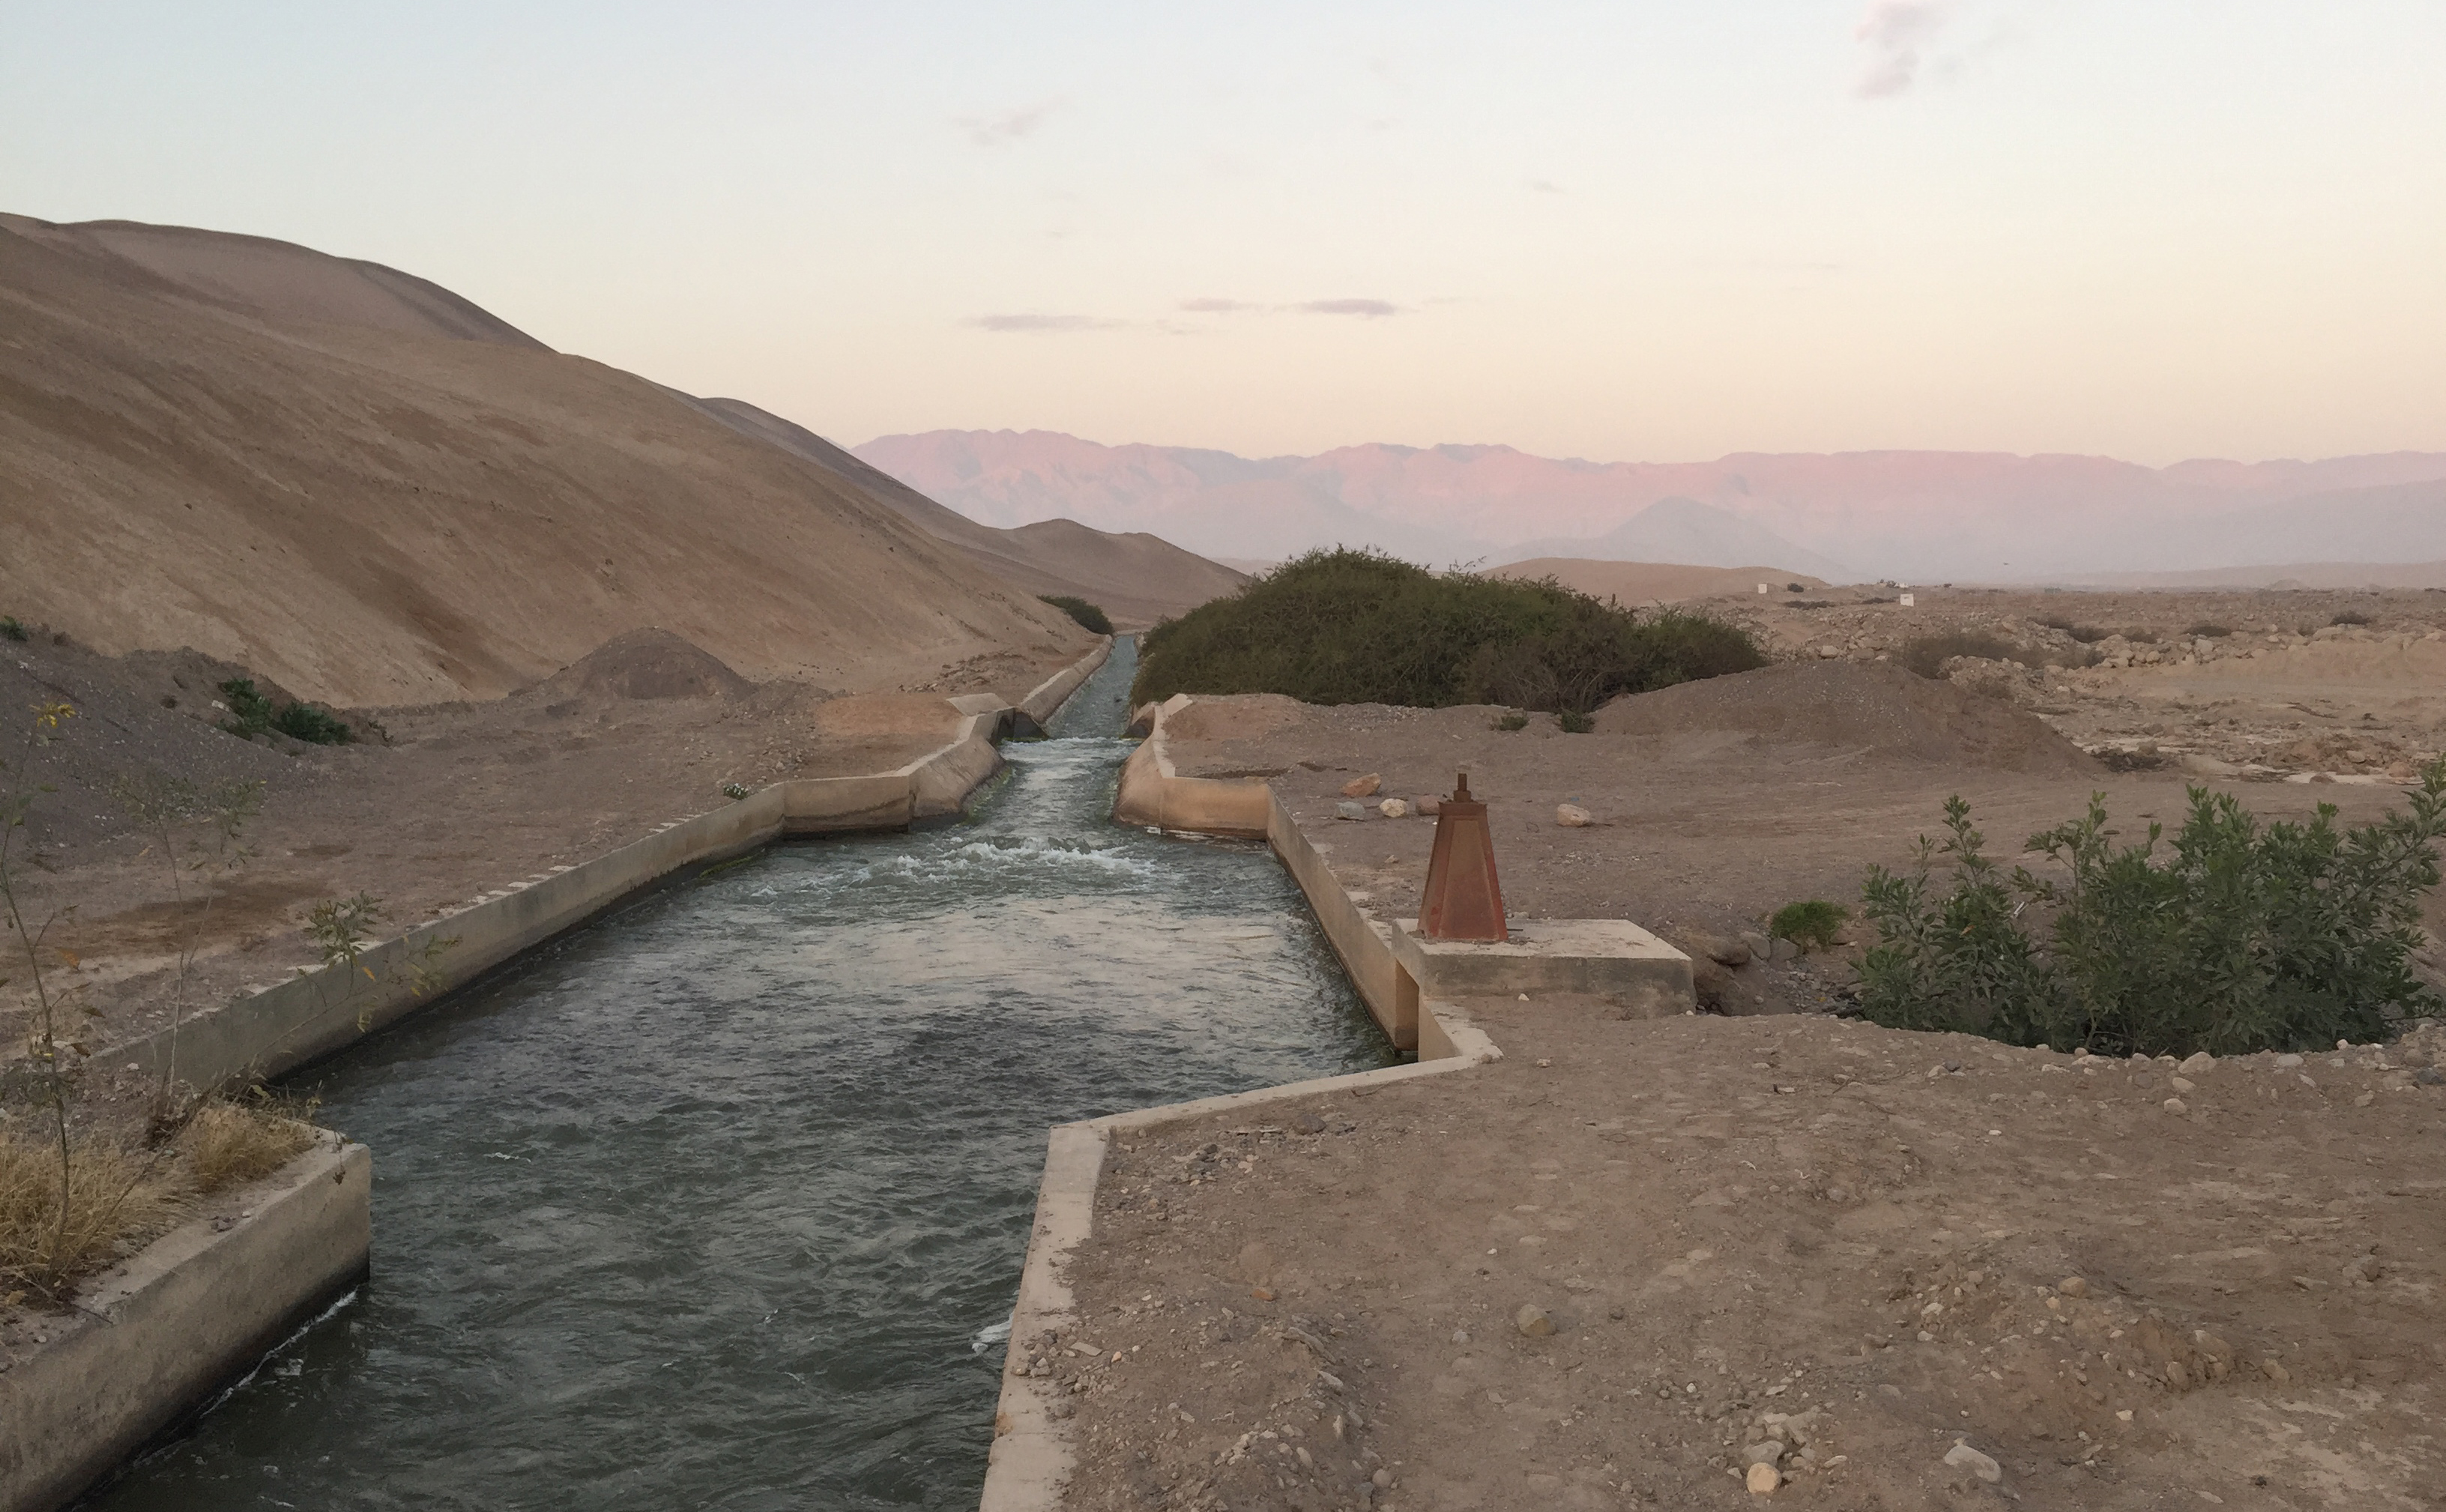 A channel full of water in a dry mountainous landscape